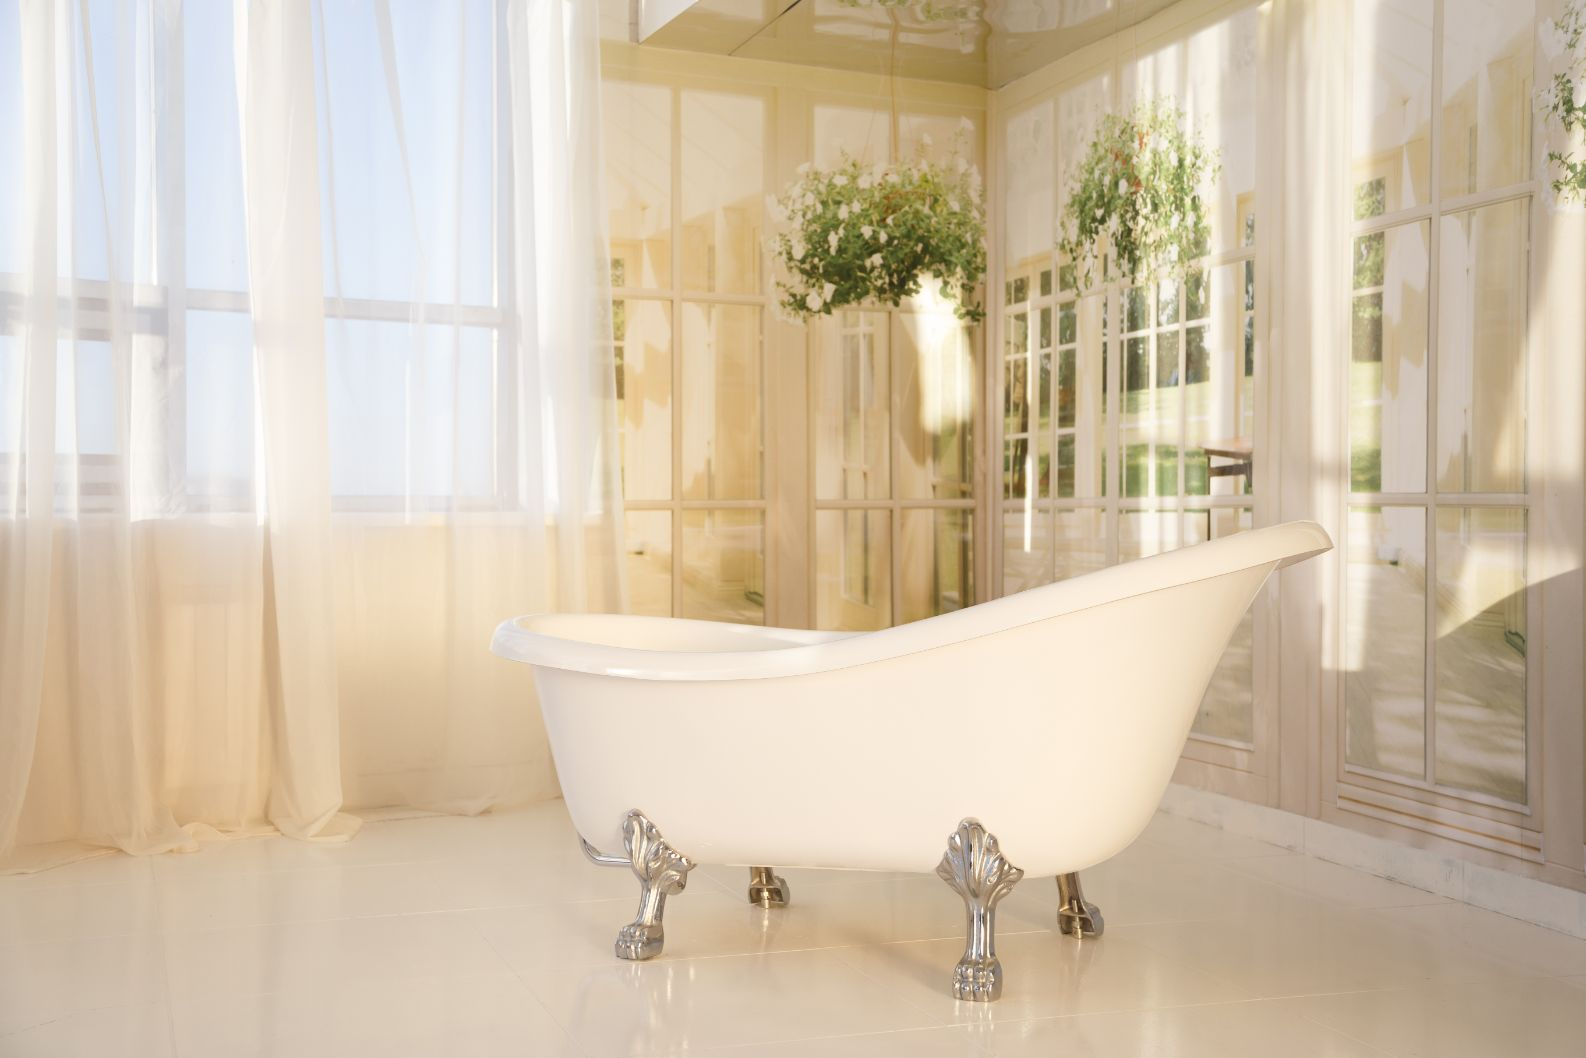 A Practical Guide to Clawfoot Bathtubs